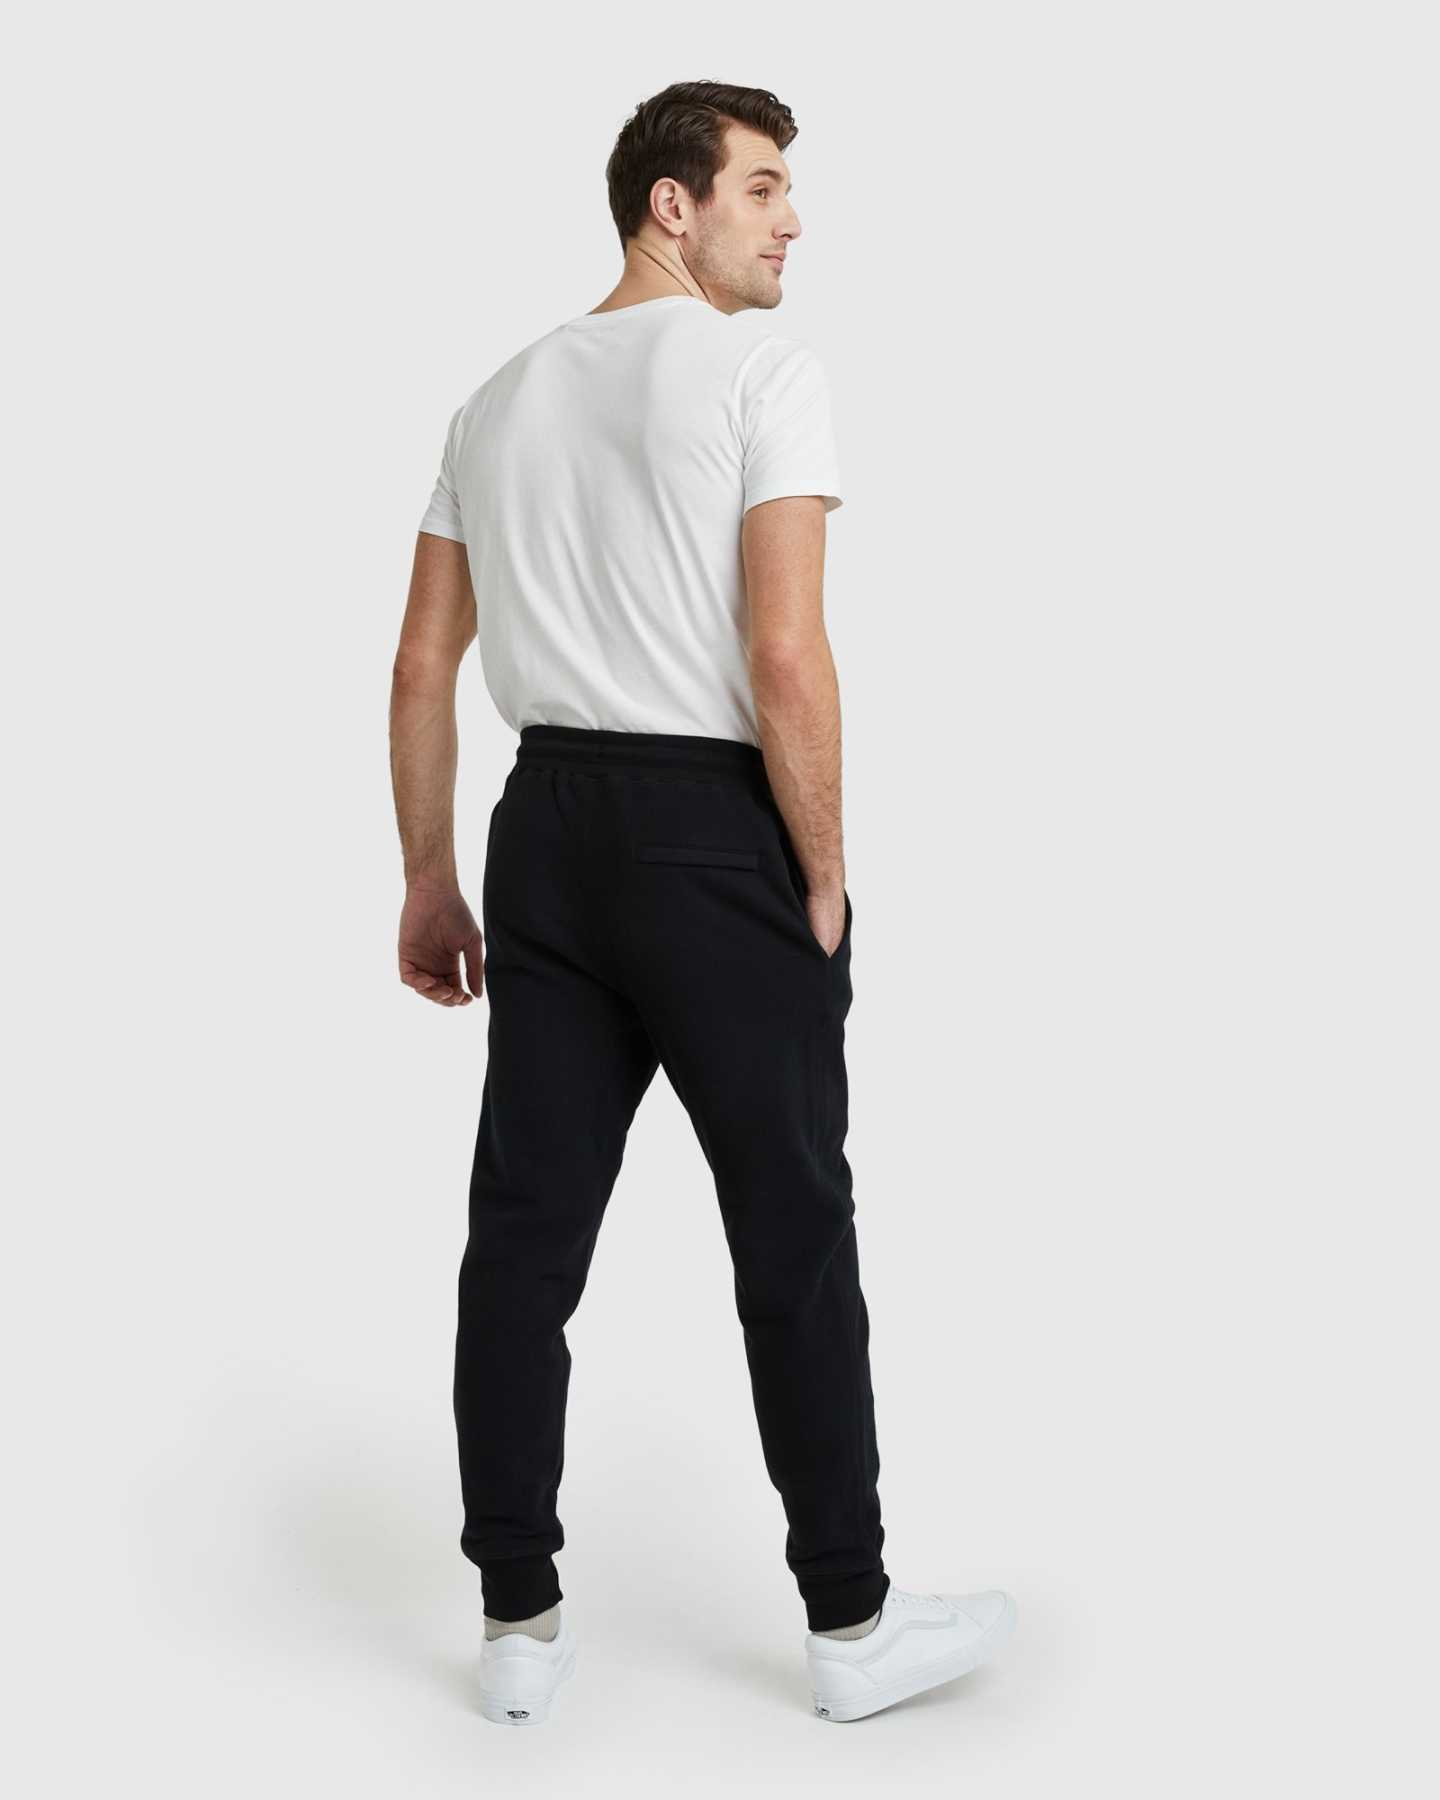 Man wearing 100% organic cotton heavyweight sweatpants in black posing